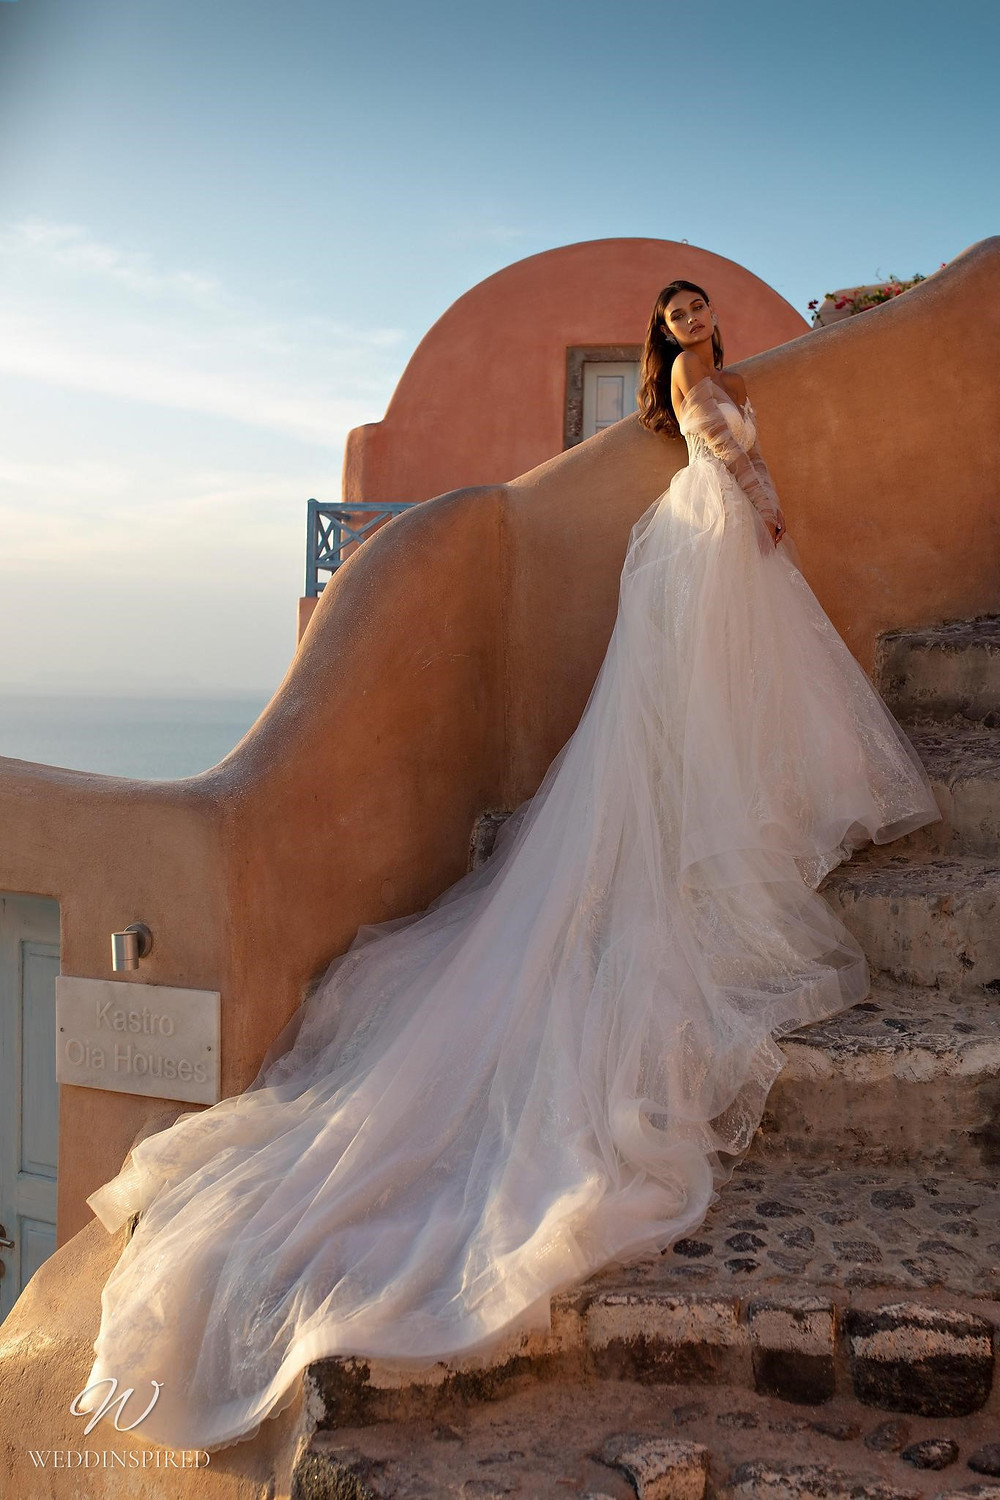 A Ricca Sposa off the shoulder tulle ball gown wedding dress with long sleeves and a train